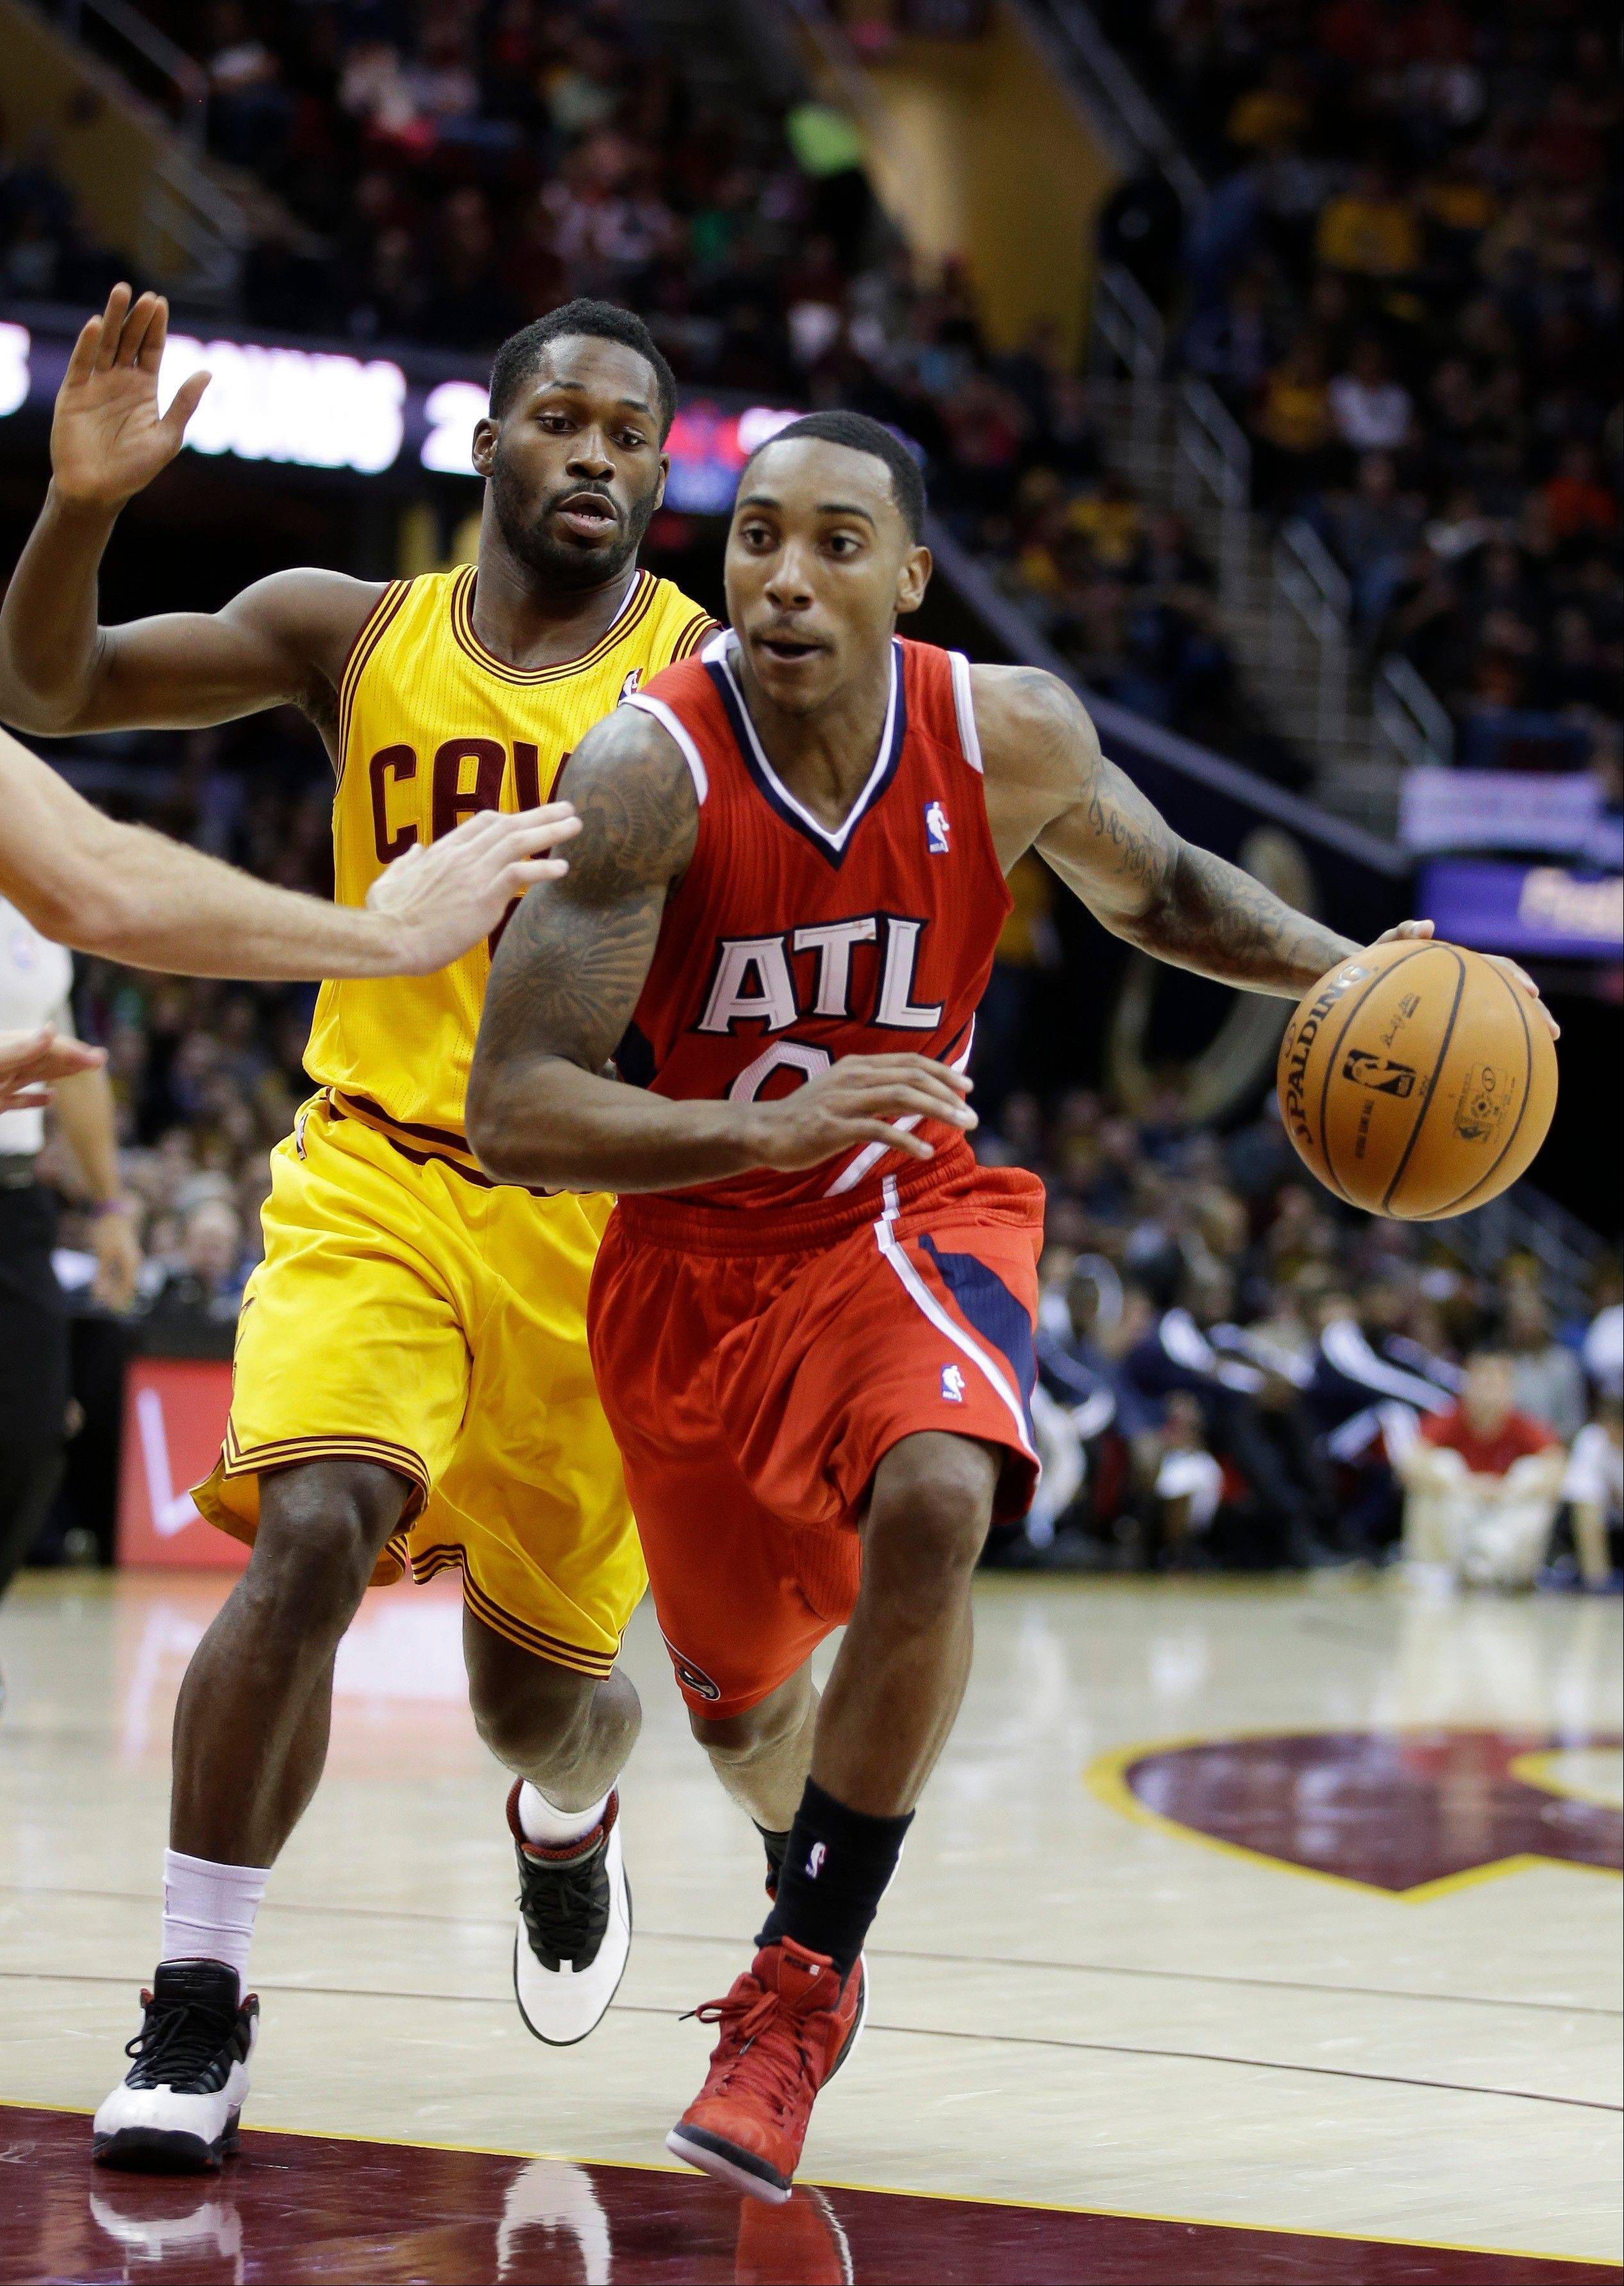 Atlanta�s Jeff Teague drives past the Cavaliers� Jeremy Pargo in the third quarter Friday in Cleveland. Teague led the Hawks with 27 points in a 102-94 win over the Cavaliers.